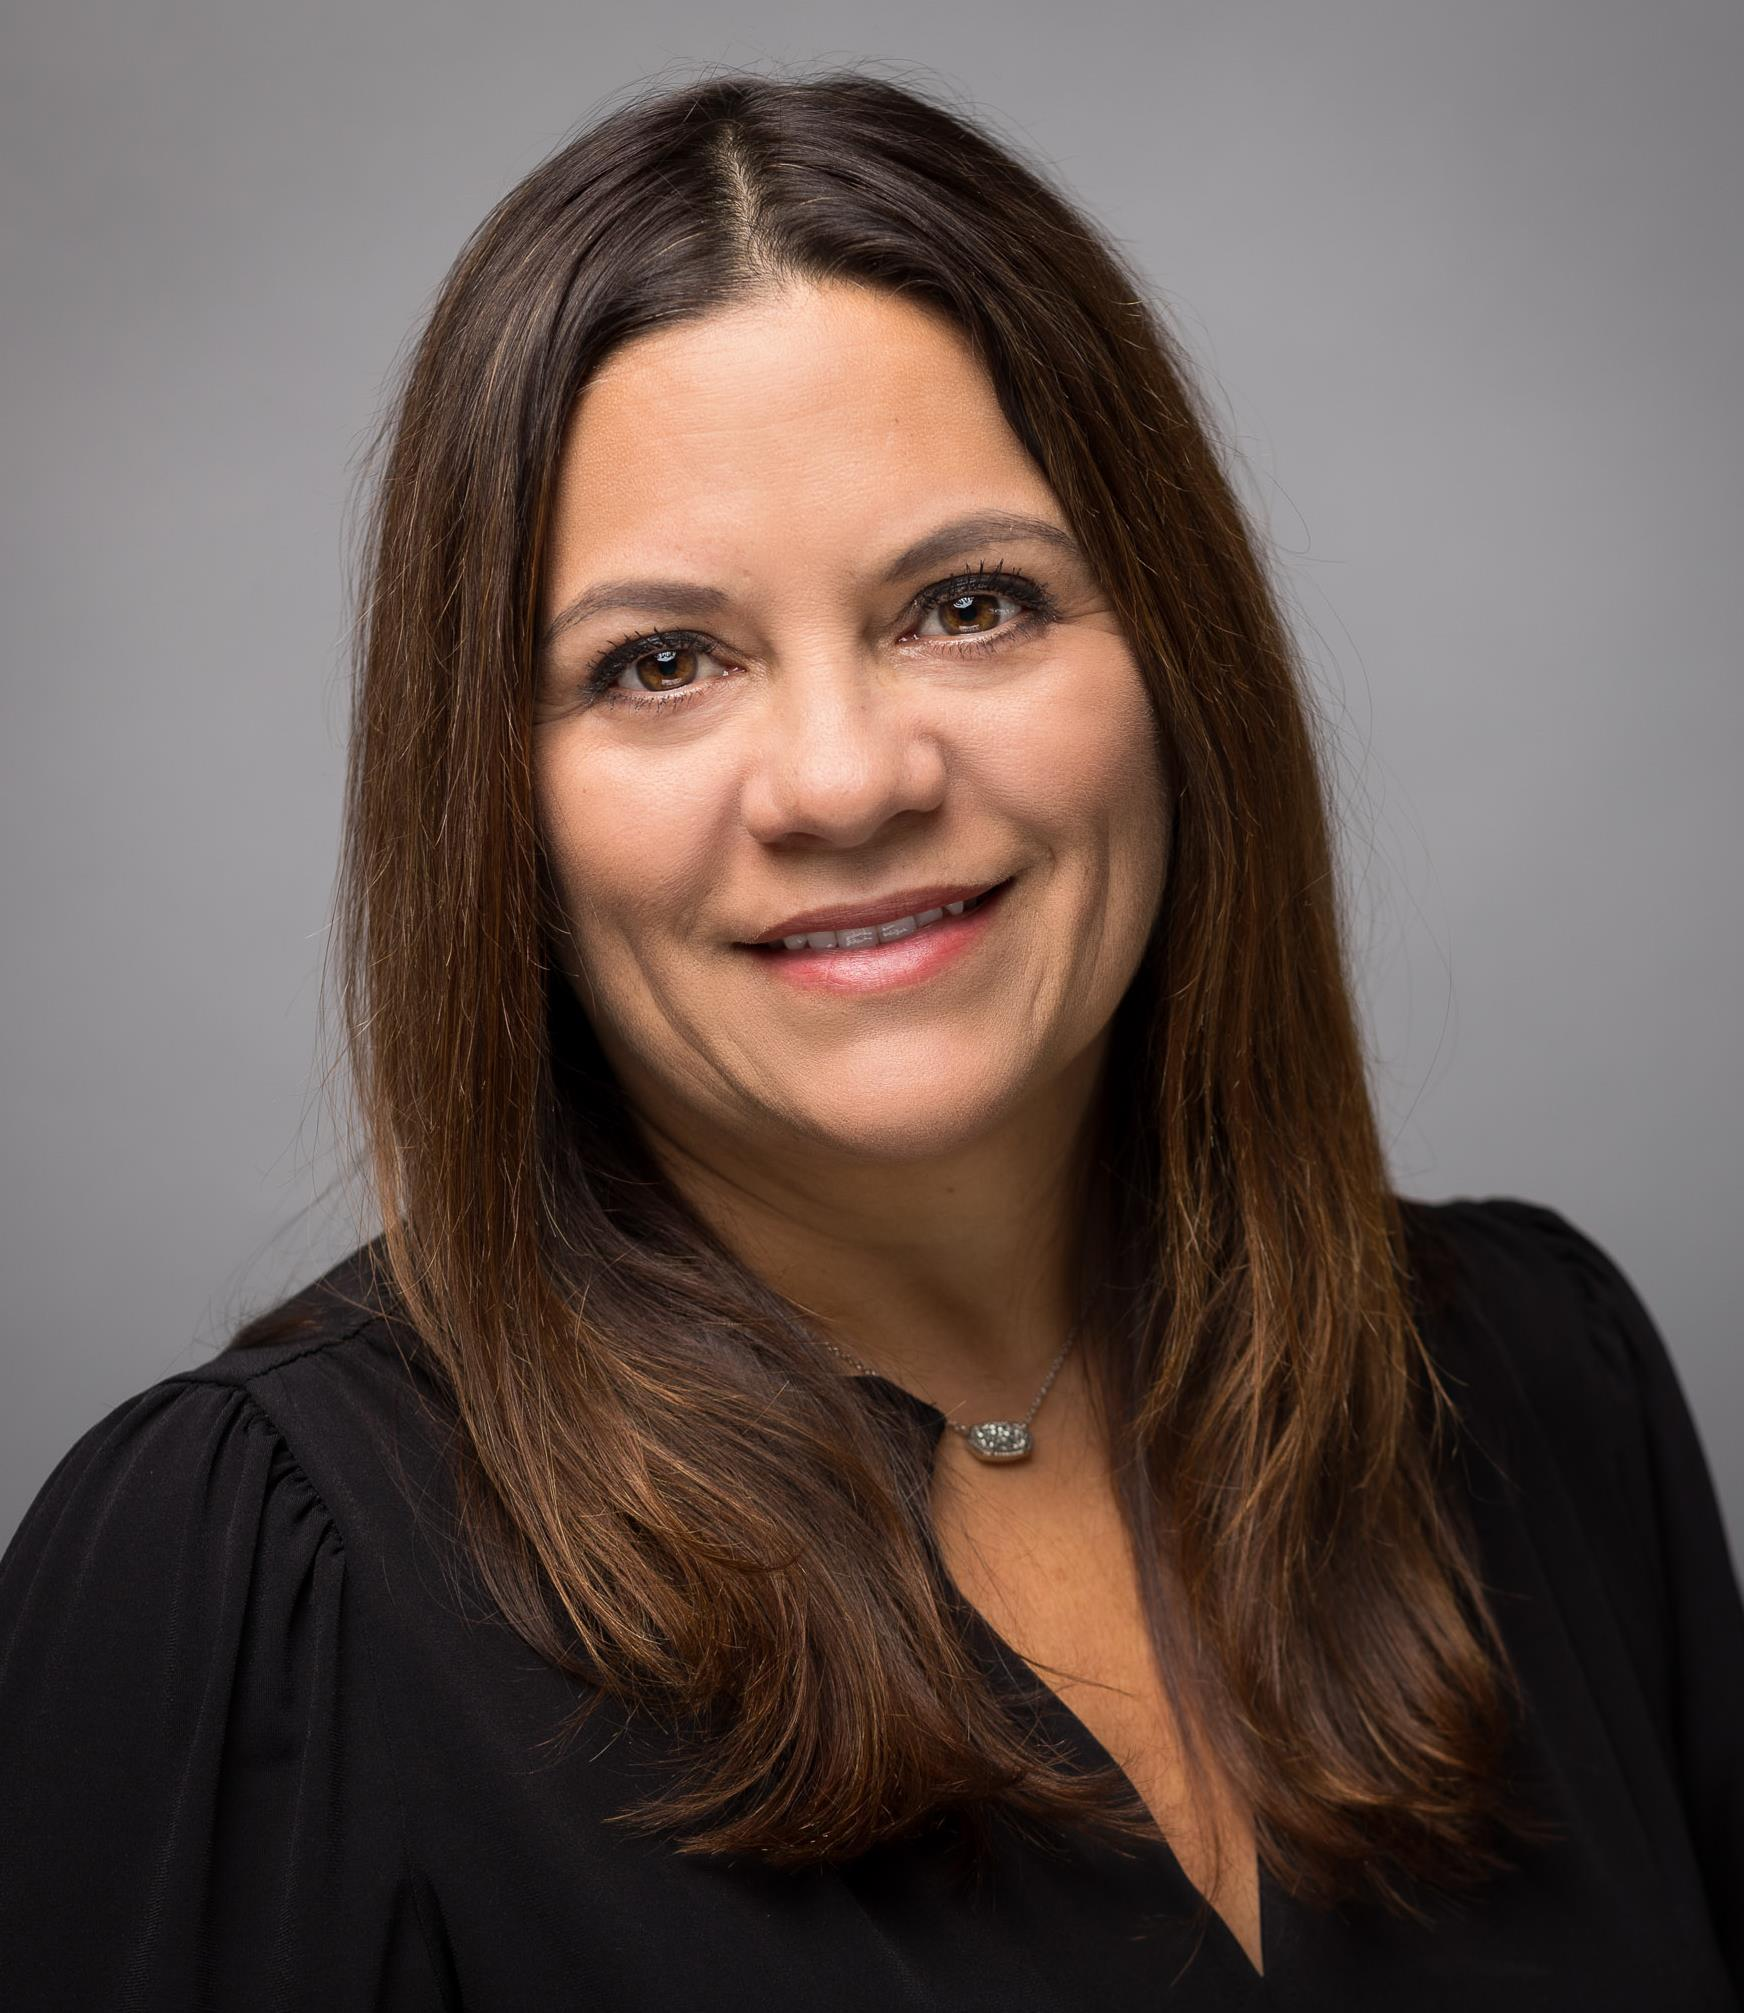 Monica Duerwachter is a licensed real estate agent in Brookfield WI